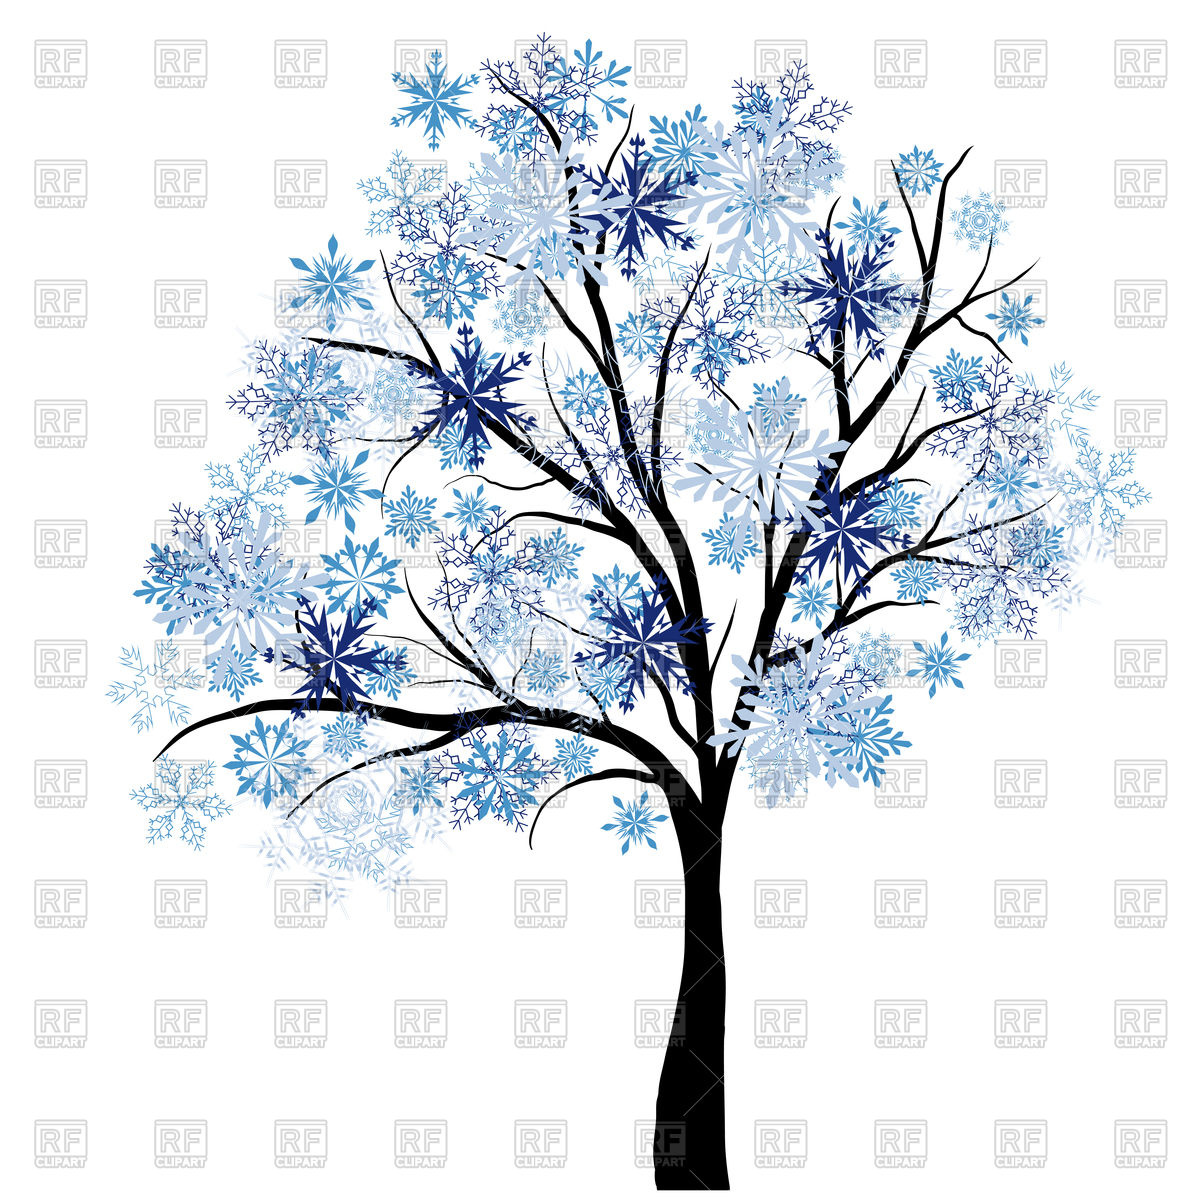 1200x1200 Beautiful Winter Tree With Snowflakes Leaves Royalty Free Vector